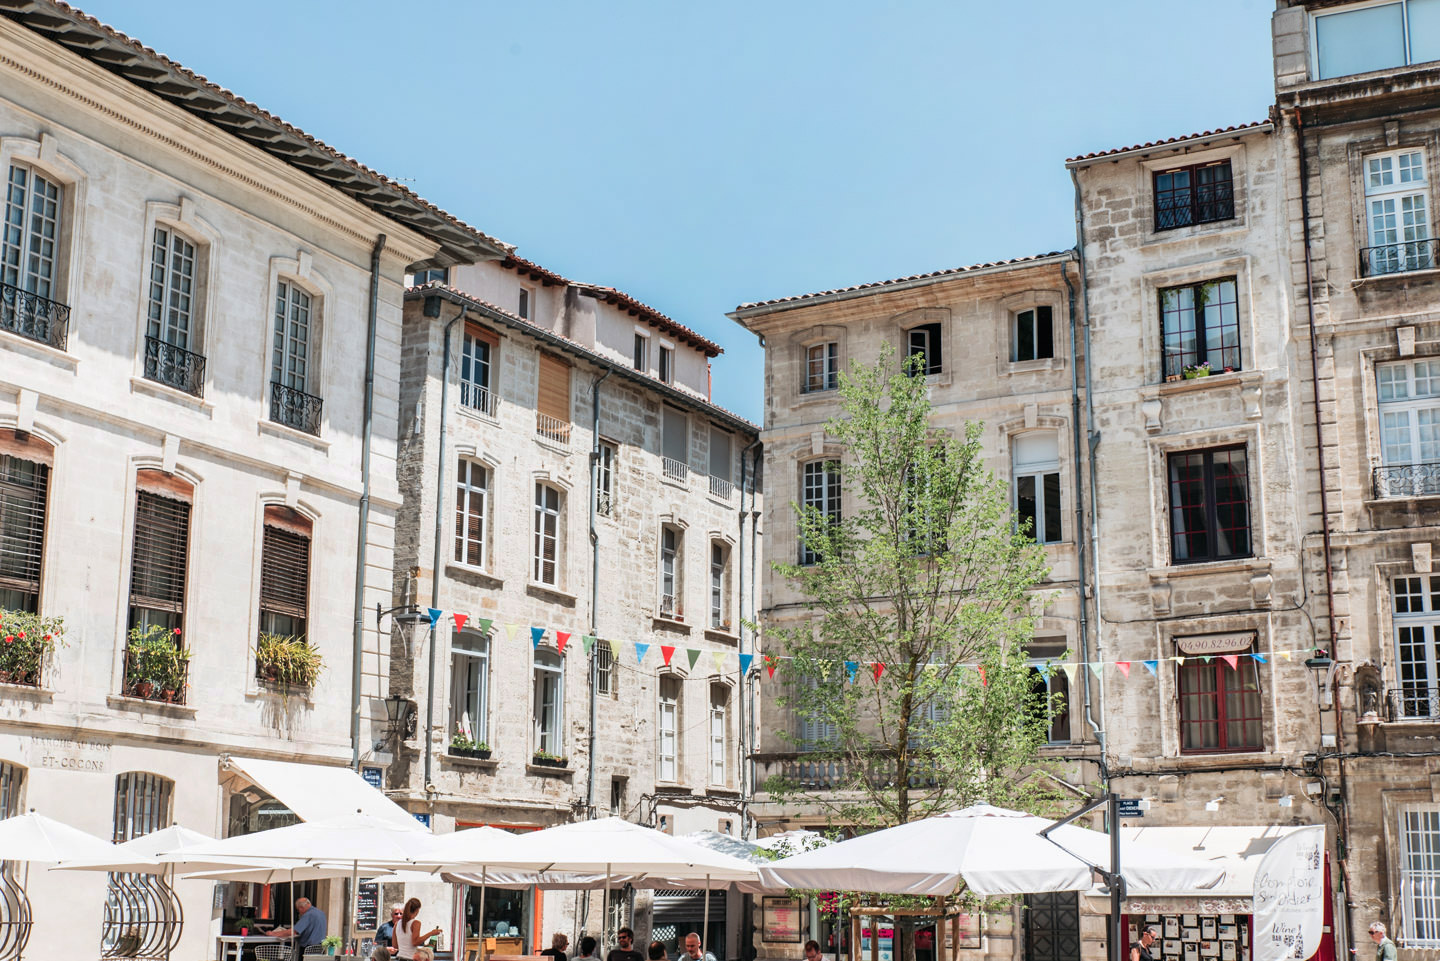 Blog-Mode-And-The-City-Lifestyle-Voyage-Avignon-Mas-Des-Herbes-Blanches-2